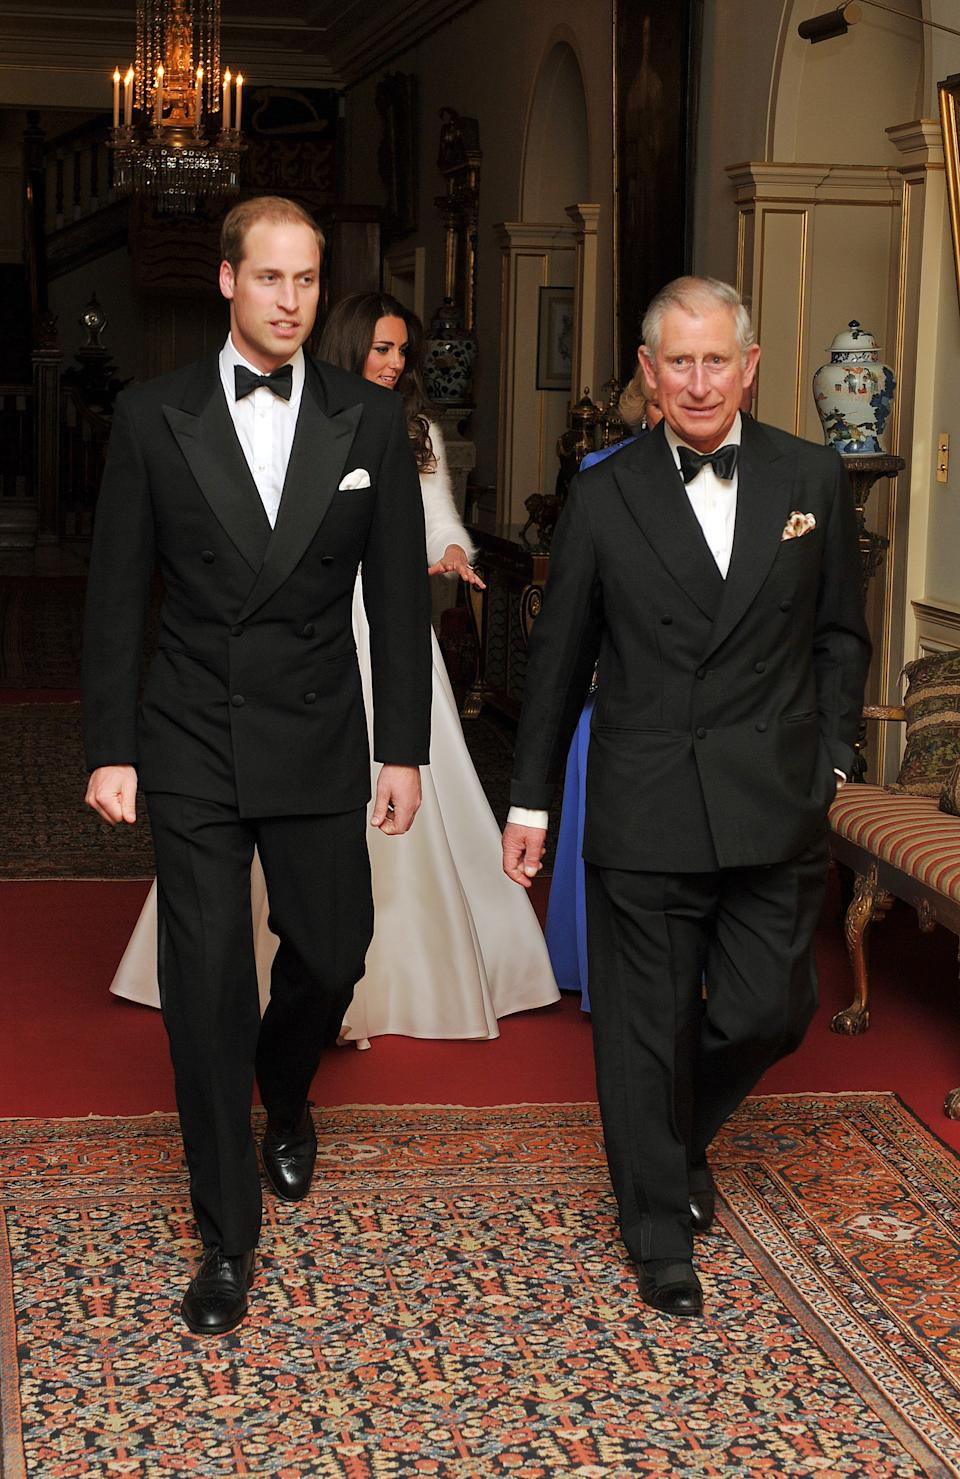 The Prince of Wales walks with his son Prince William followed by the Duchess of Cambridge and the Duchess of Cornwall, as they leave Clarence House to travel to Buckingham Palace for a dinner and party, this evening.